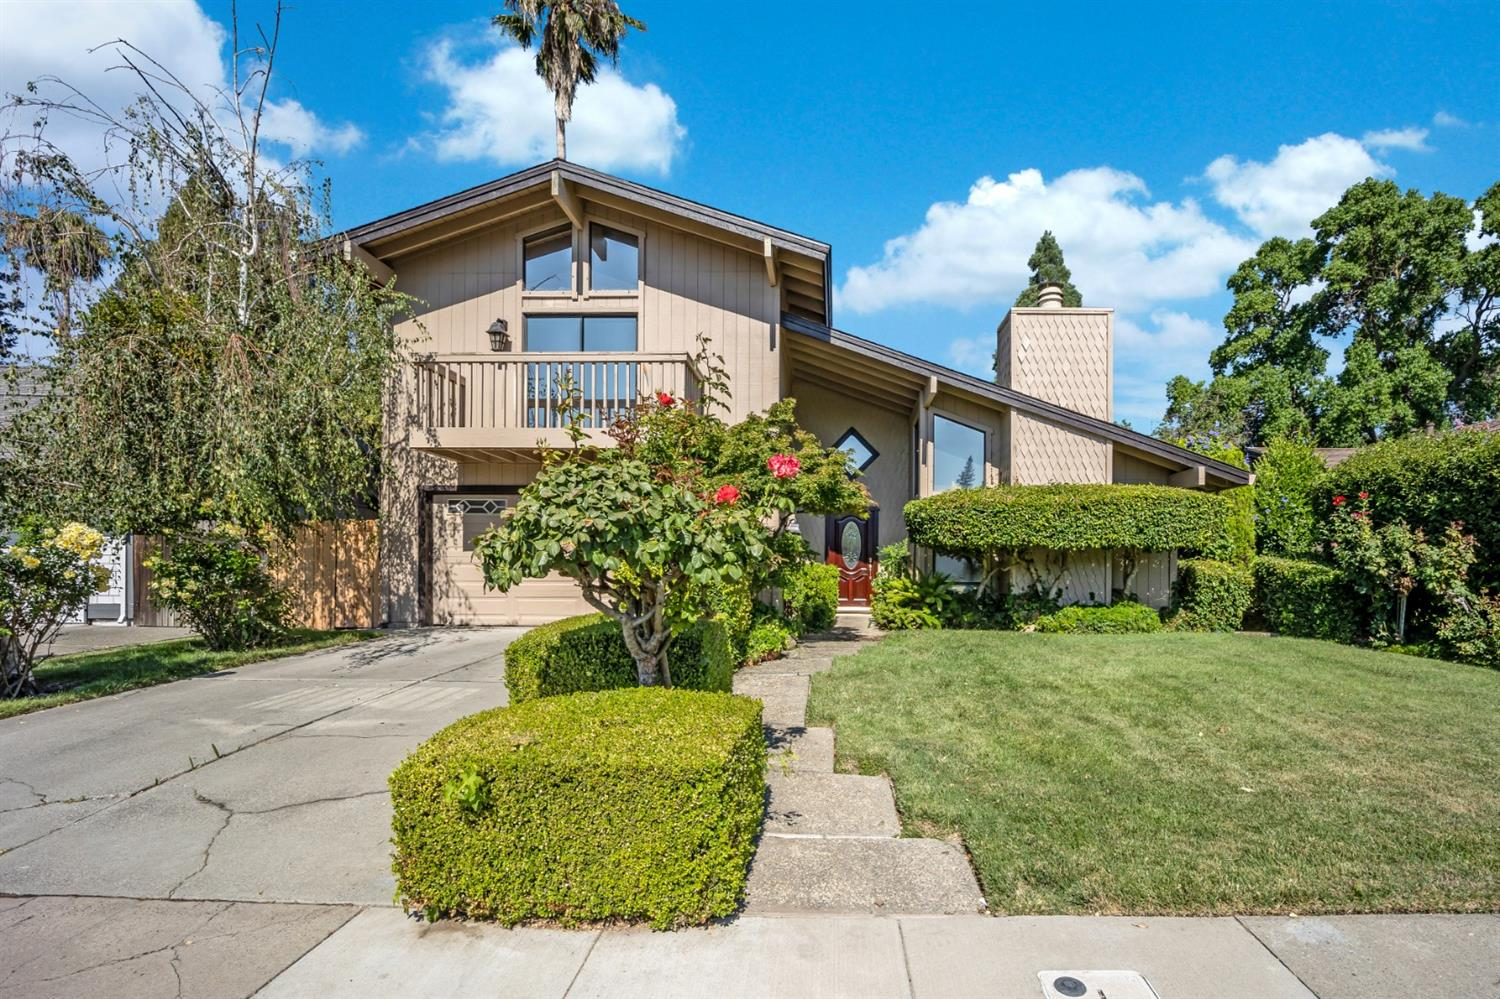 Welcome to an open, spacious tri-level home in the heart of the Pocket. The Pocket is one of the premiere communities in all of Sacramento with some of the best schools in the county. Pulling up to the home, you'll find it's well landscaped and clean. Stepping foot inside, you're welcomed into a home full of light, with large open spaces and vaulted ceilings. The living room upfront is designed for entertaining, as it features a large sitting area overlooked by a separate dining area. The first floor features eye-catching, polished, travertine floors with laminate on the elevated floors for durability. Upstairs you'll find an incredibly large master suite complete with a balcony to enjoy the sunrises or evening breezes, as well as the two additional bedrooms and renovated bathroom. The real star of the show is the enormous and fully landscaped backyard.  The vast backyard and open downstairs area make this home perfect for entertaining, and spacious enough for even the largest family.